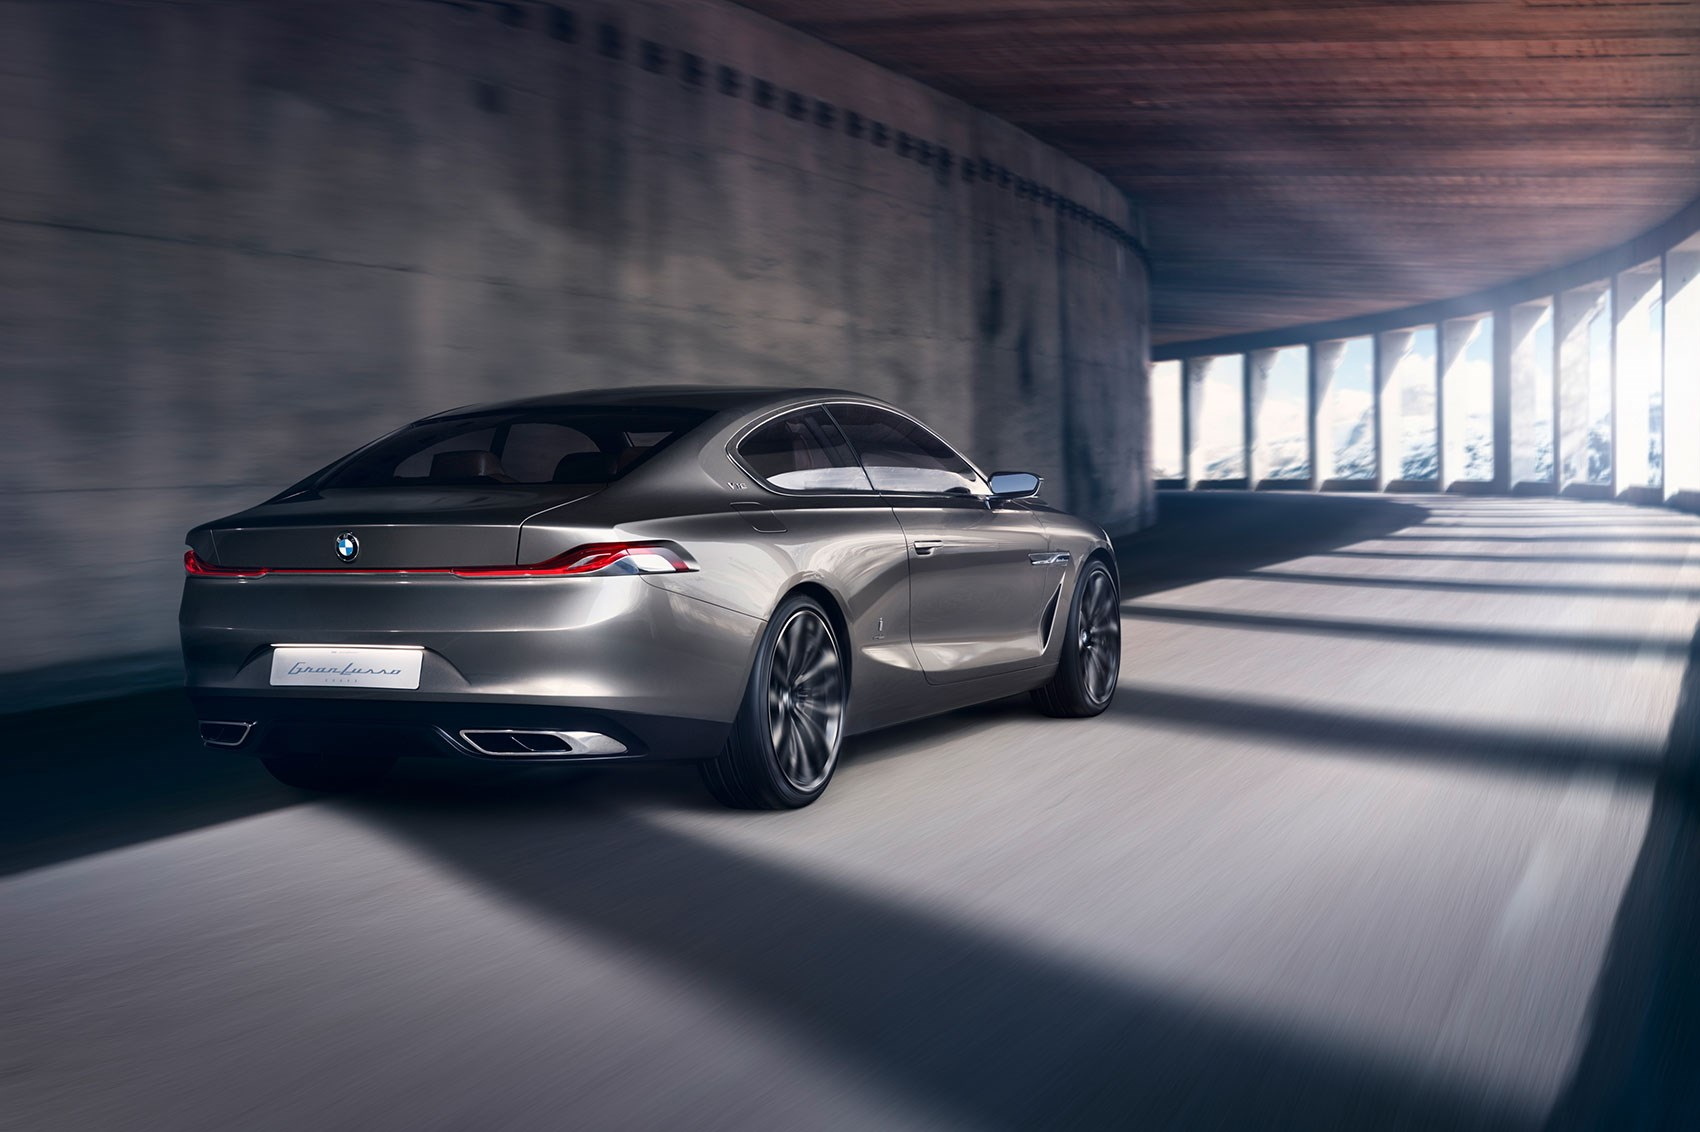 Bmw S Dreamliner 9 Series Coupe Coming In 2020 By Car